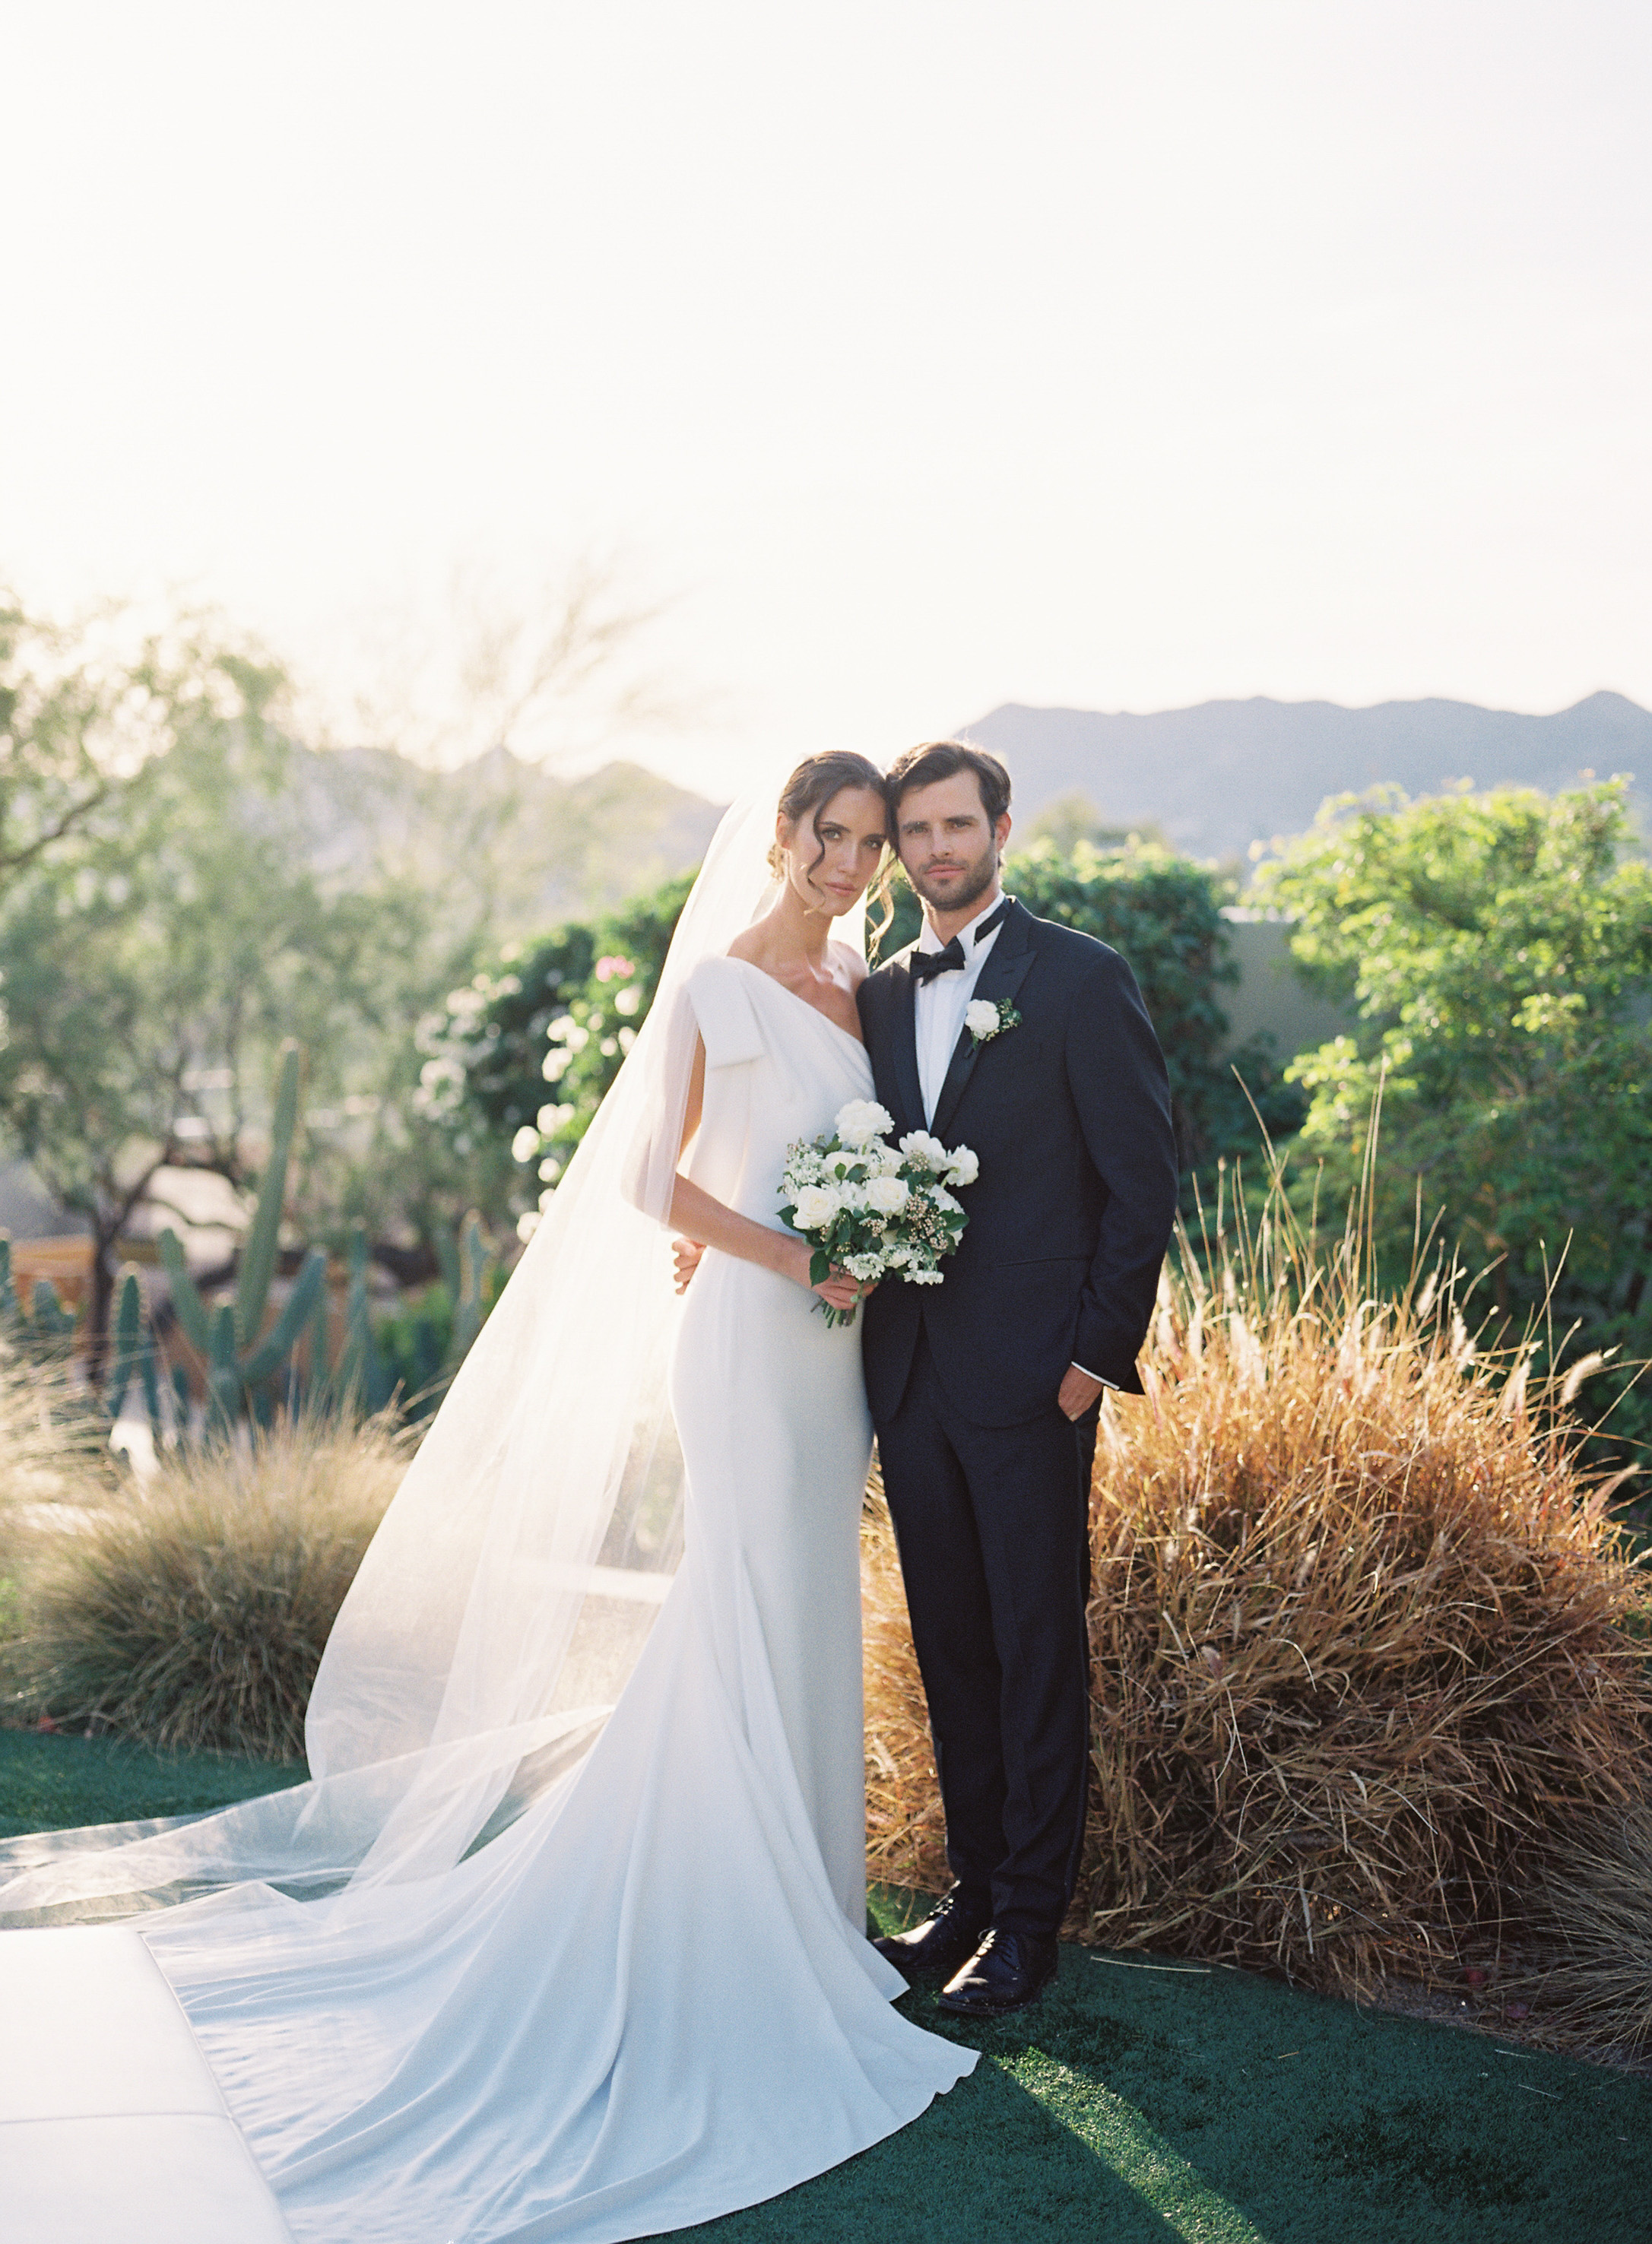 Sanctuary_on_Camelback_Editorial_Wedding_Justin_Douglas_Photography00103.jpg